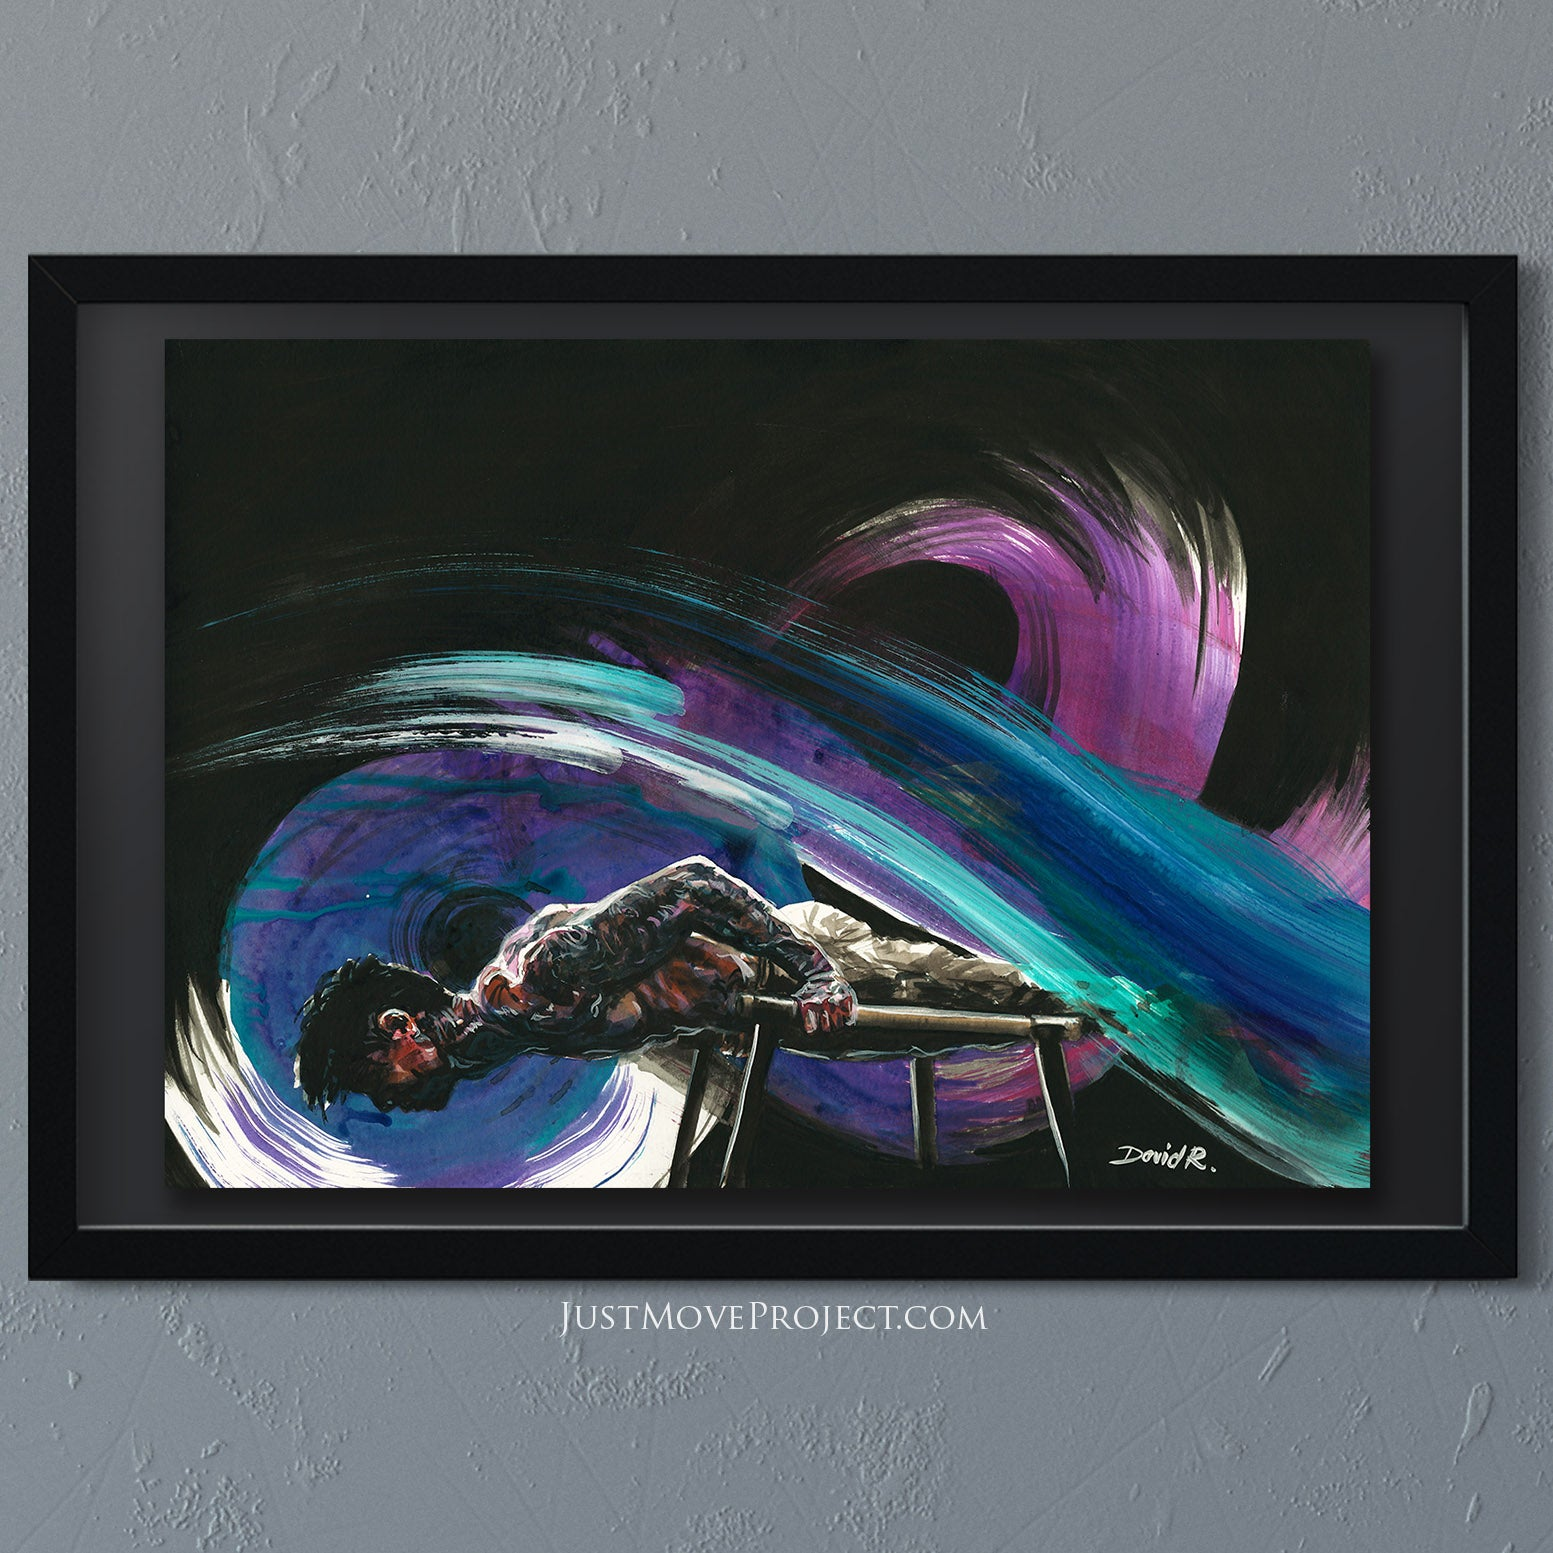 david roman art just move project 2 watercolour watercolor painting vibrant wall art home decor inspired by movement and athletes turquoise teal mauve chris heria street workout parkour energy